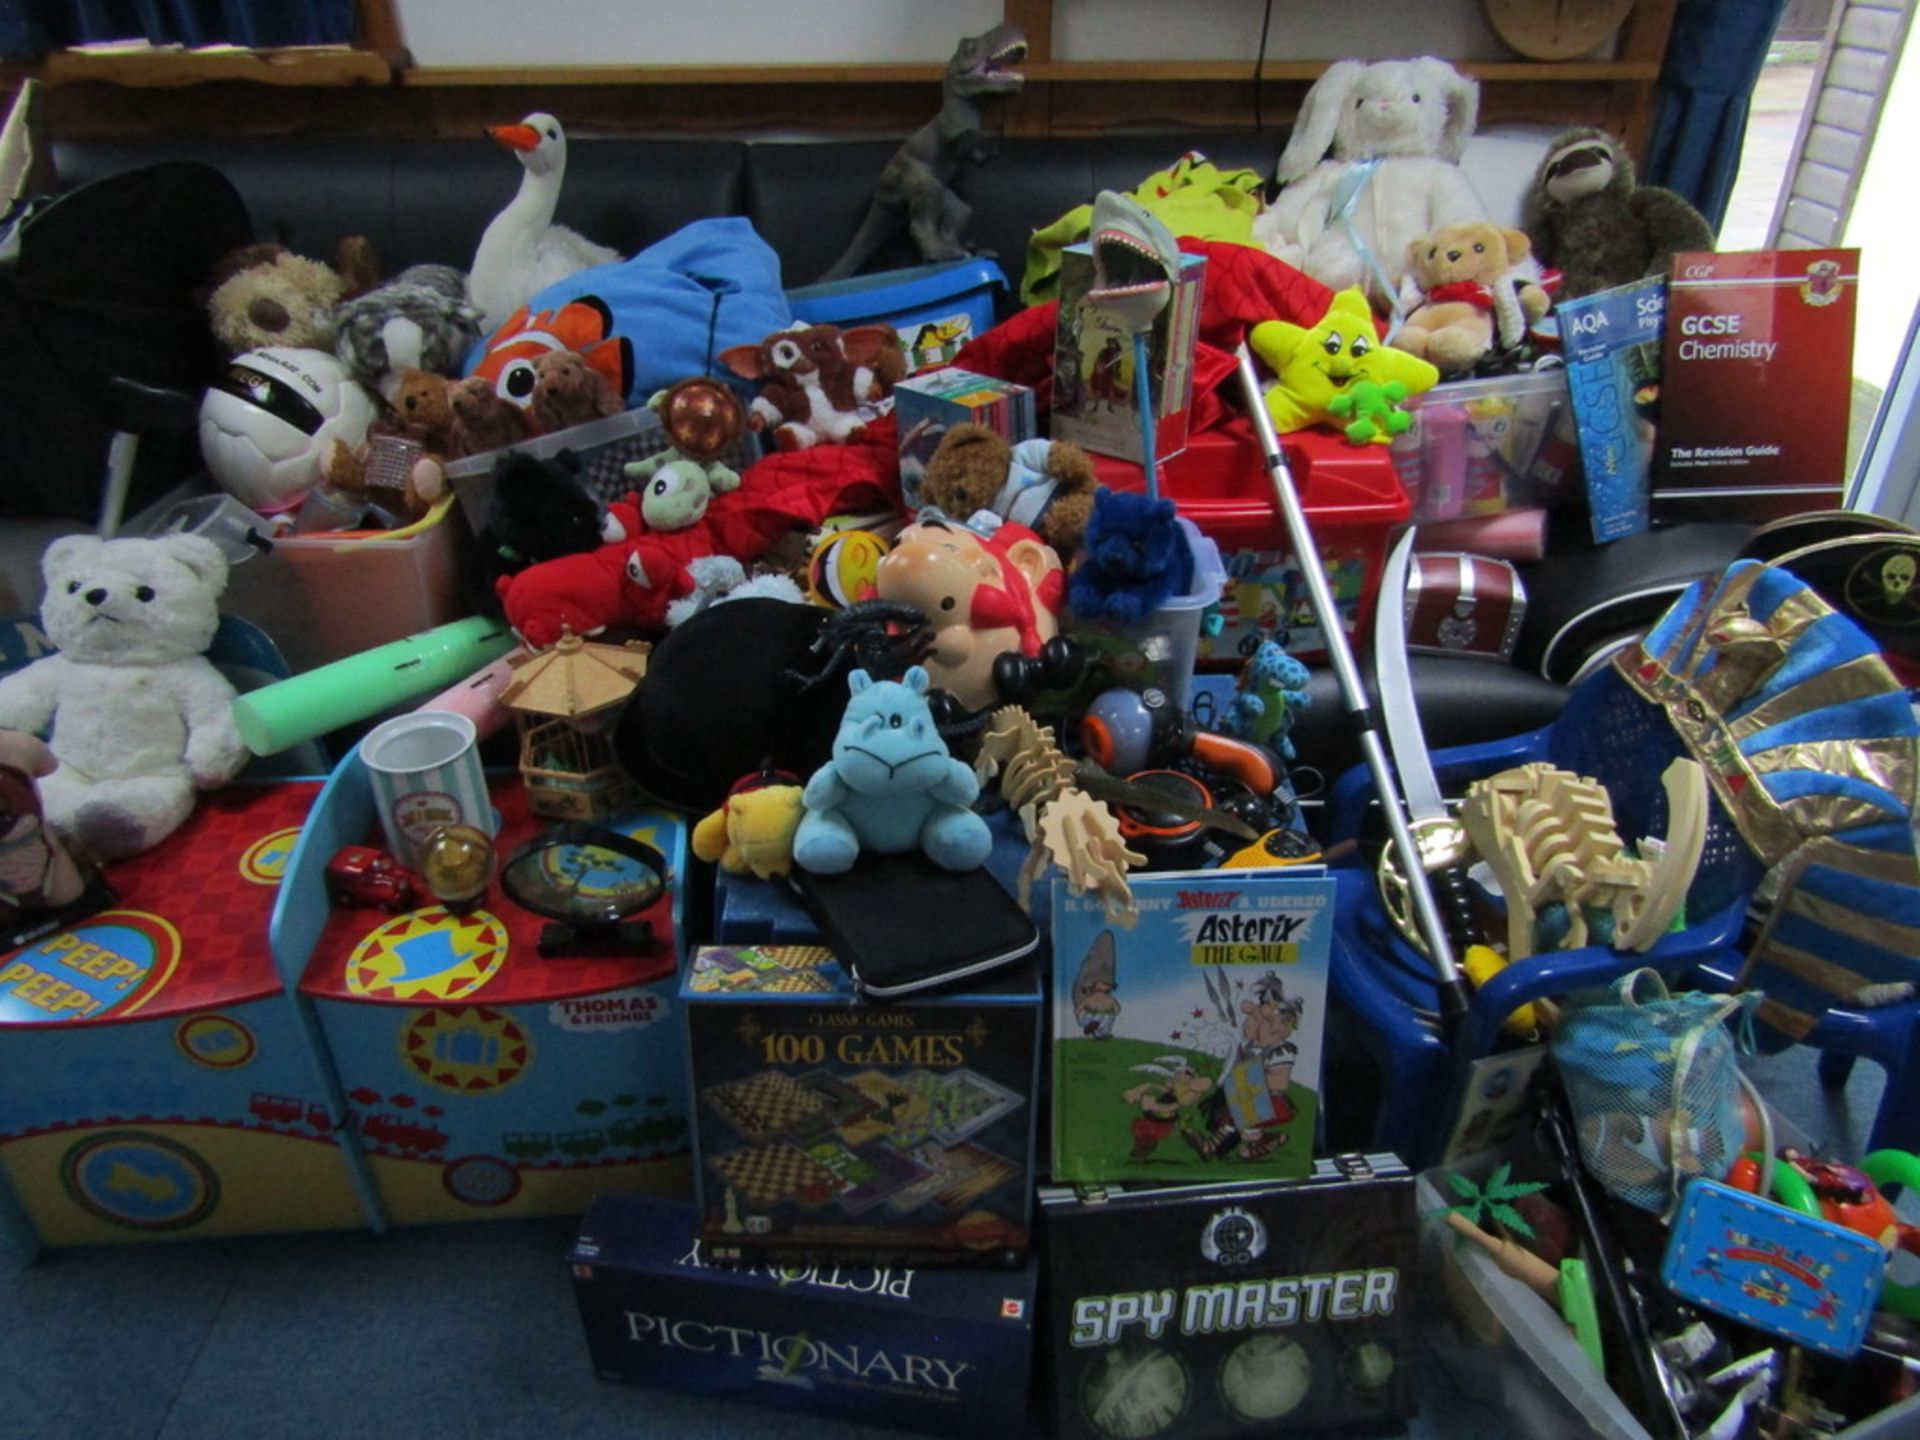 Pallet Load of USED Toys and Games. - Image 3 of 10